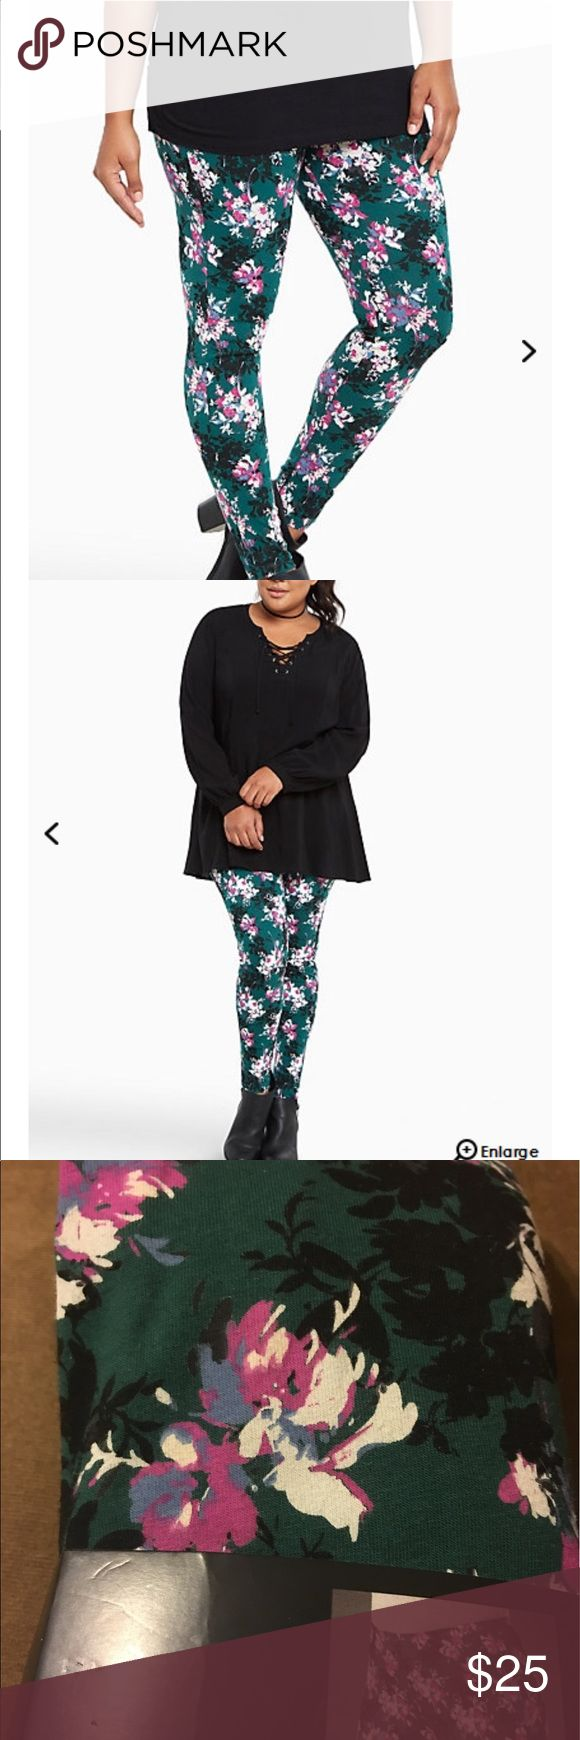 NWT torrid size 3 floral full length leggings NWT torrid size 3 floral full length leggings.  Save on your water bill, wear floral prints instead. These full length leggings are fitted from stretch waistband to tapered leg, in a forest green knit. The multi-color floral print ka-blooms with or without water. torrid Pants Leggings